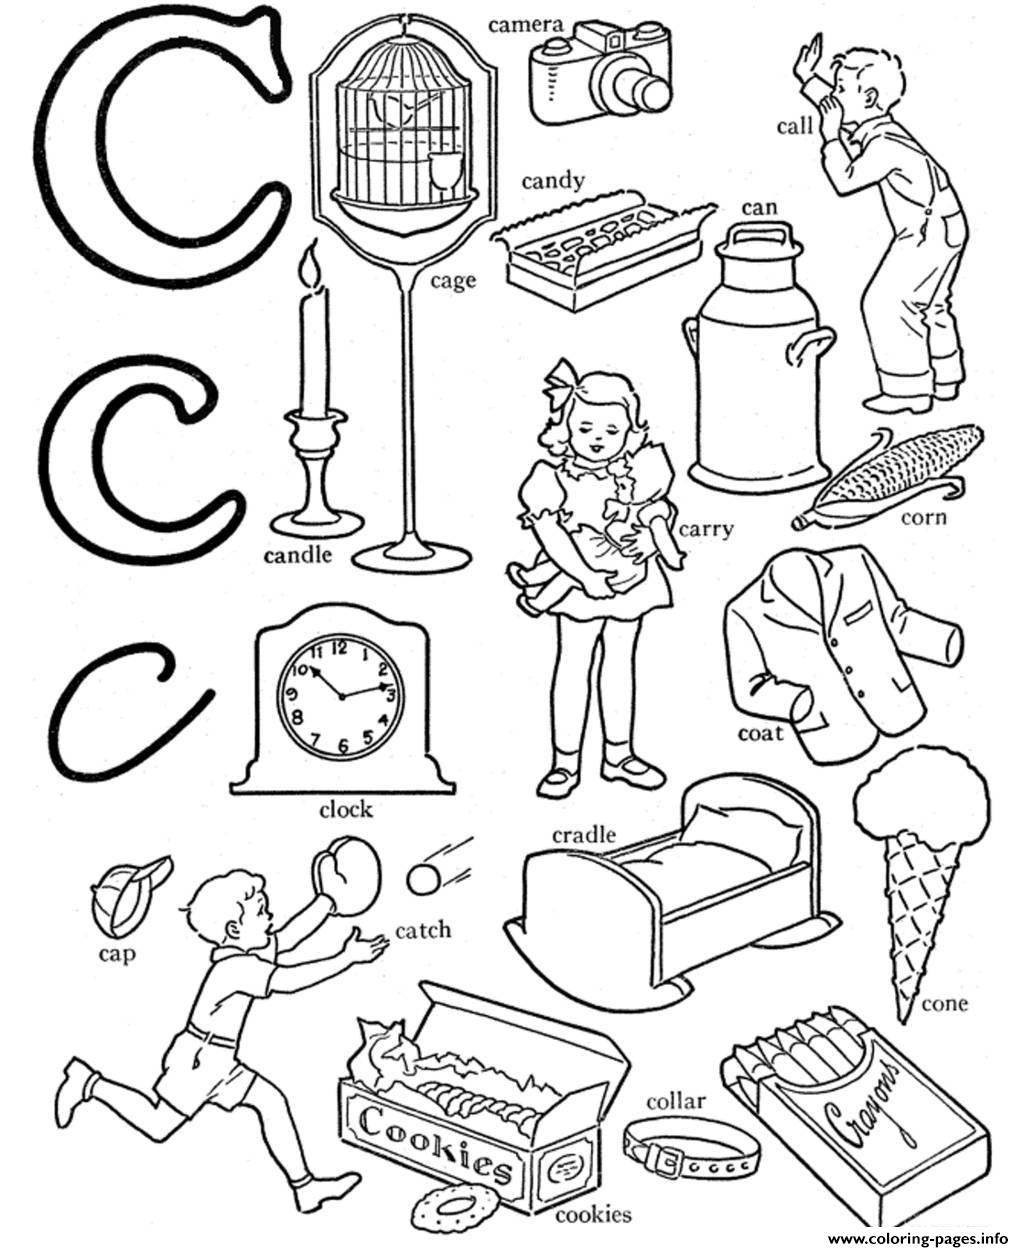 Abc Words S Alphabet C7377 Coloring Pages Printable